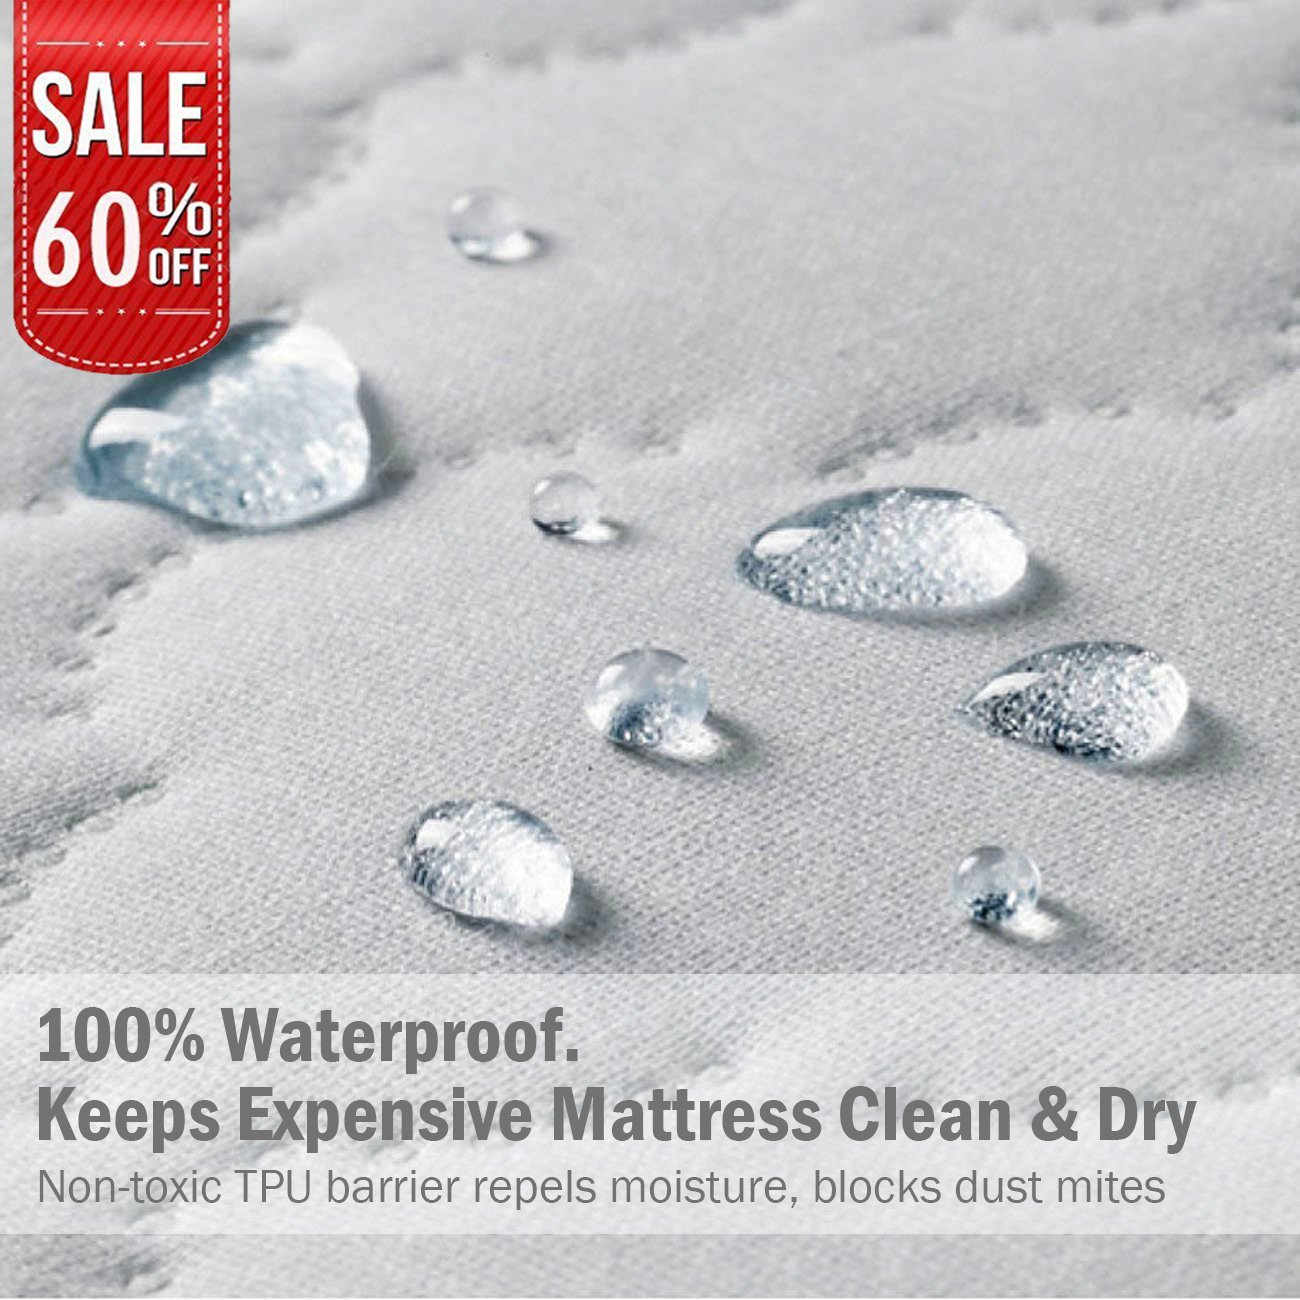 Linenwalas Reinforced Waterproof Mattress Protector – 100%Quiet, Hypoallergenic, Breathable,Cooling and Vinyl Free Premium Matress Protection Cover | Resistant from Dust Mite and Bed Bug (Split King)